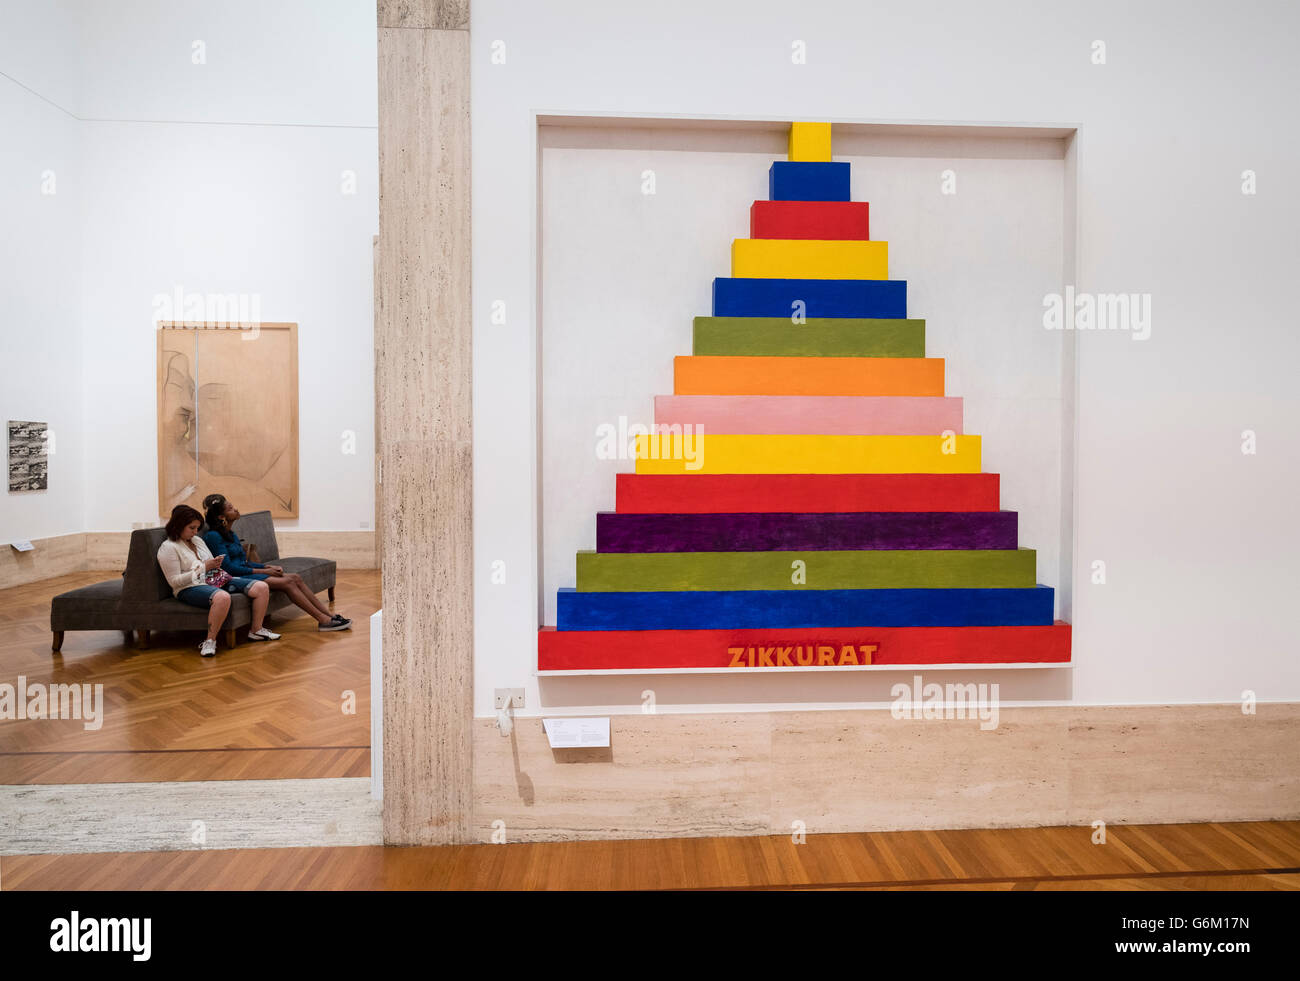 Installation Zikkurat 2 by Sam Tilson at  National Gallery of Modern and Contemporary Art , Rome, Italy - Stock Image